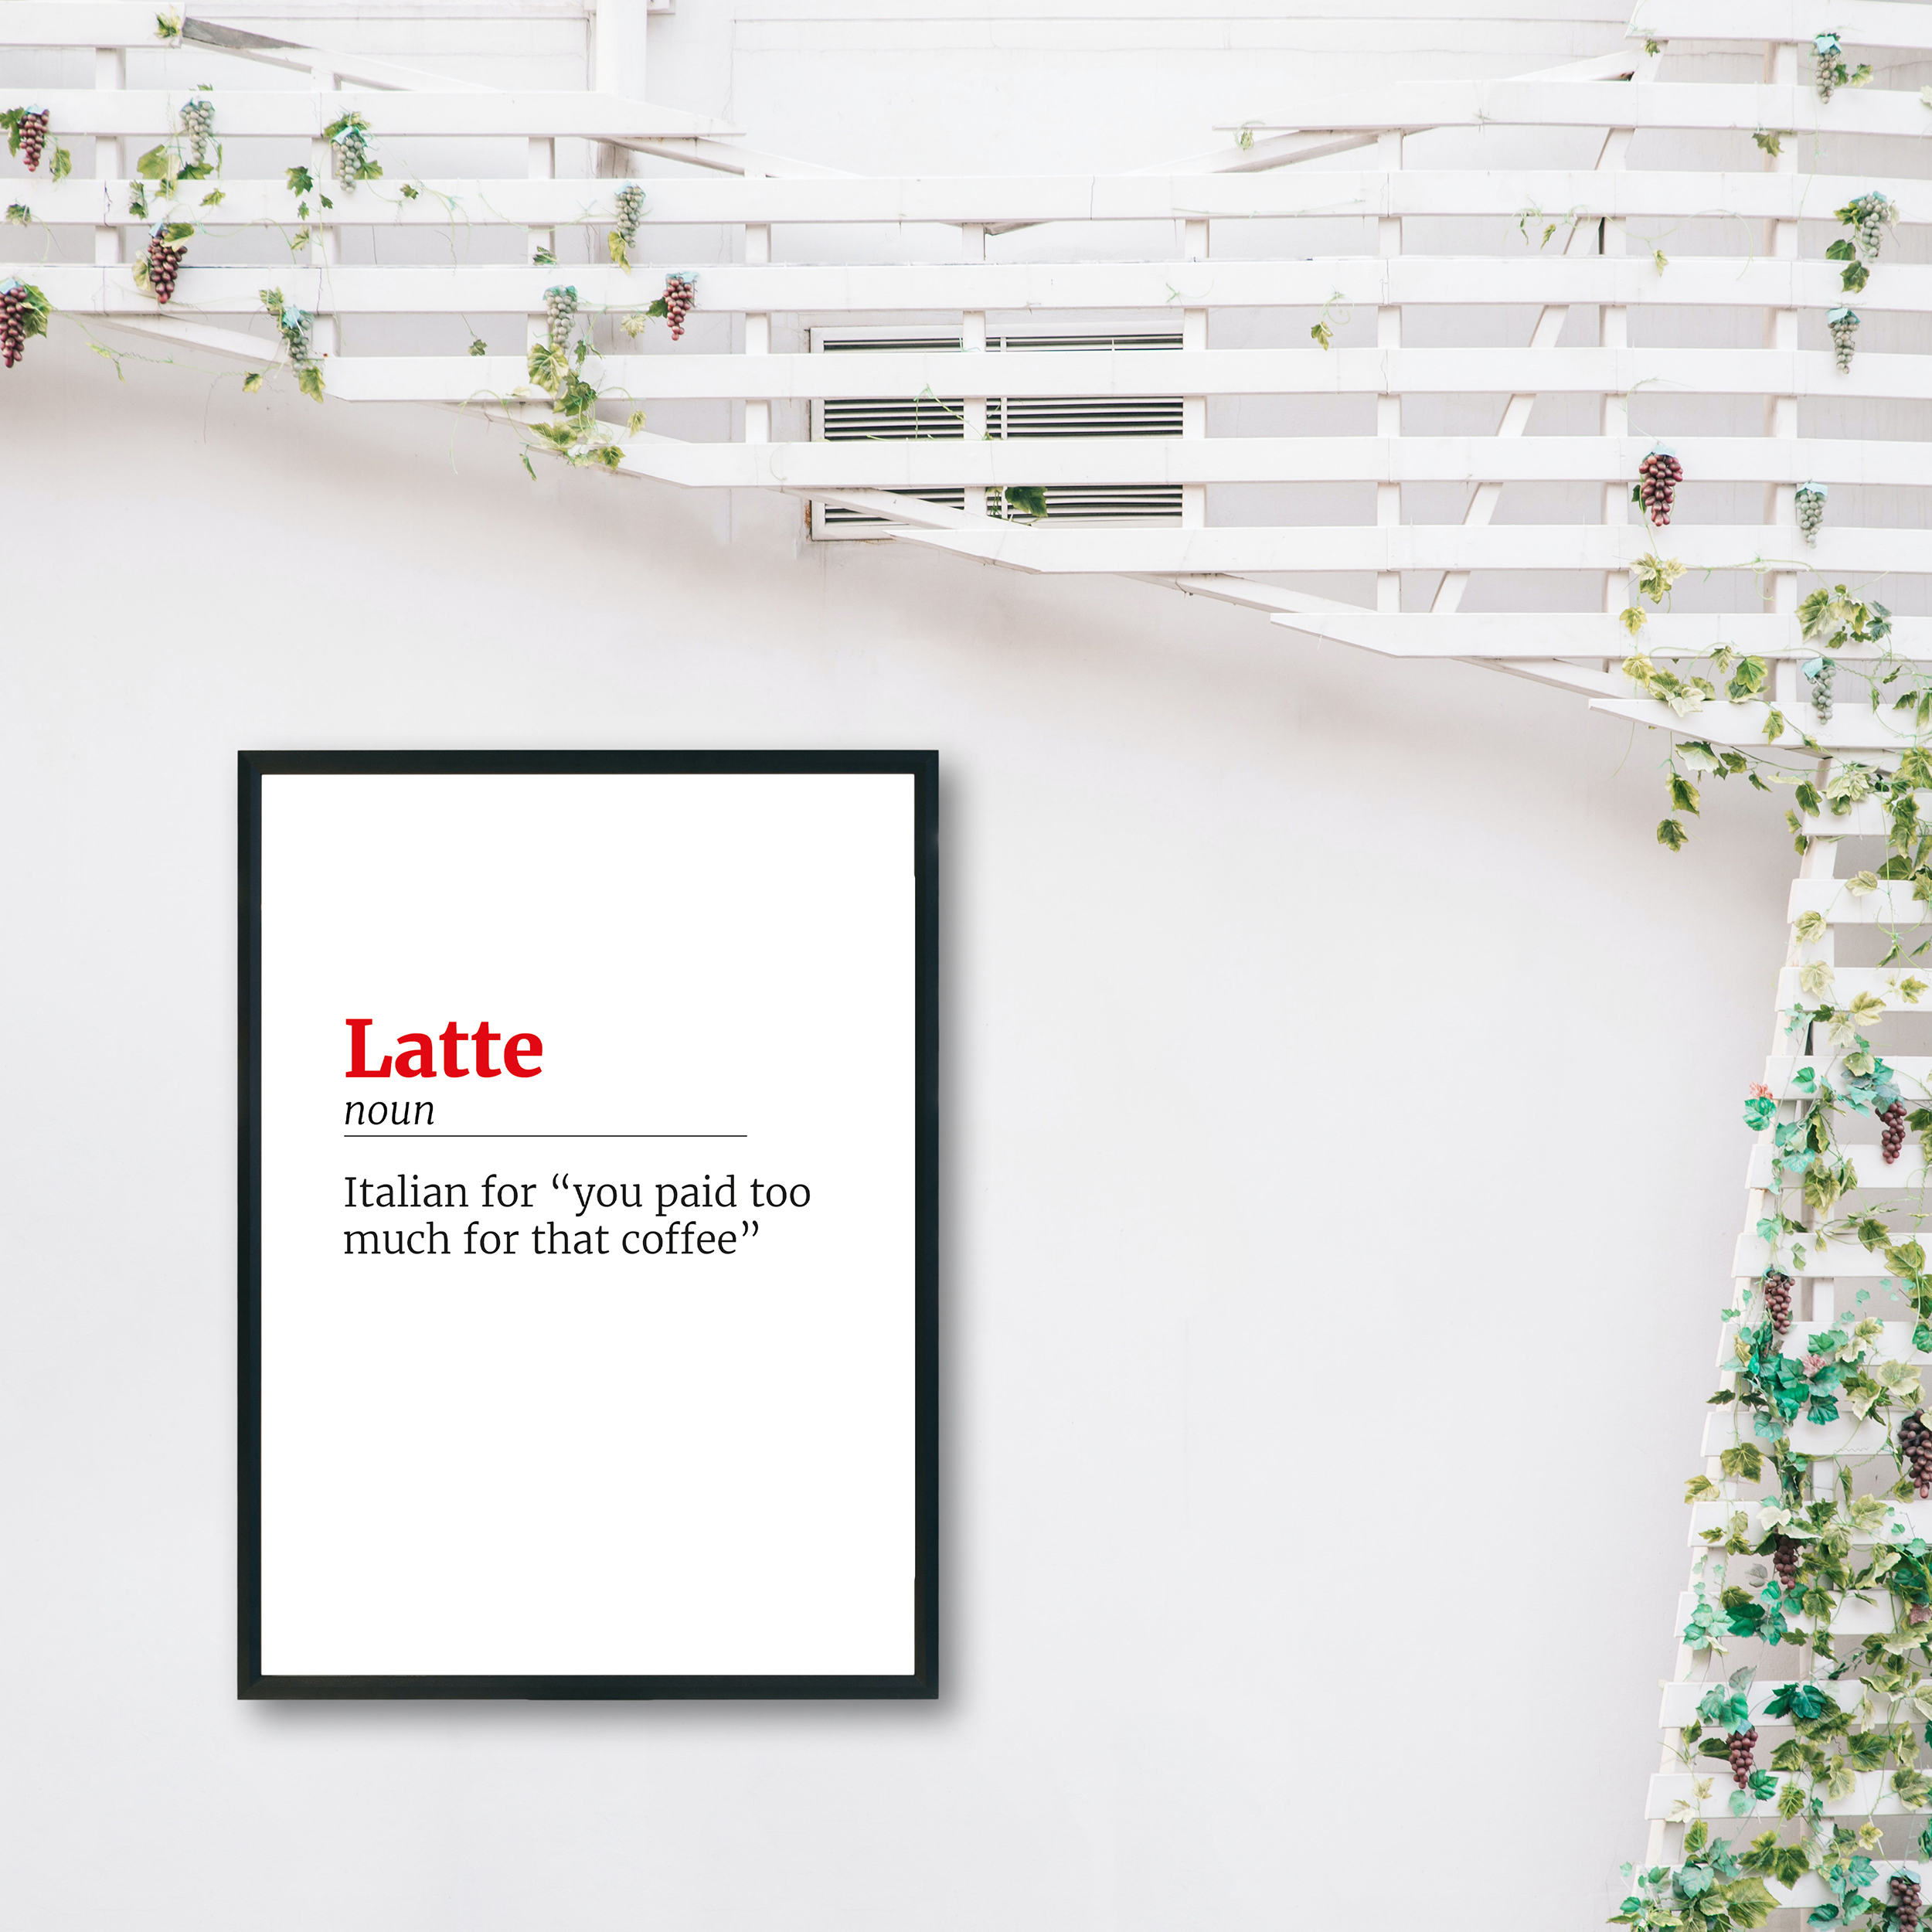 Latte Honest Definition Recycled Wall Print